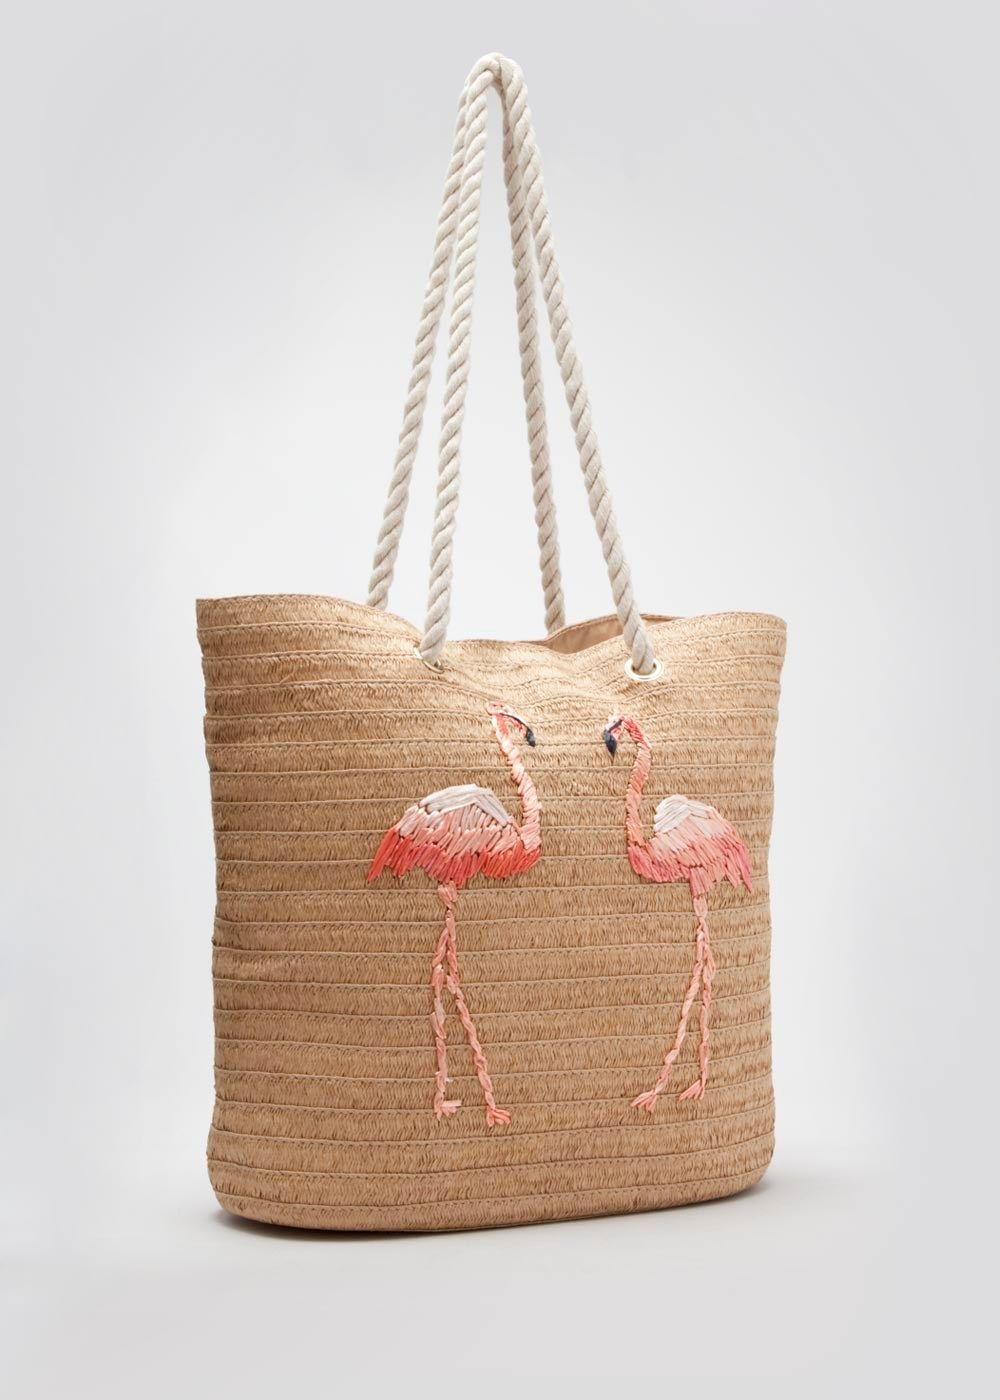 Flamingo Print Straw Beach Bag - Matalan 3288899dc8ec2